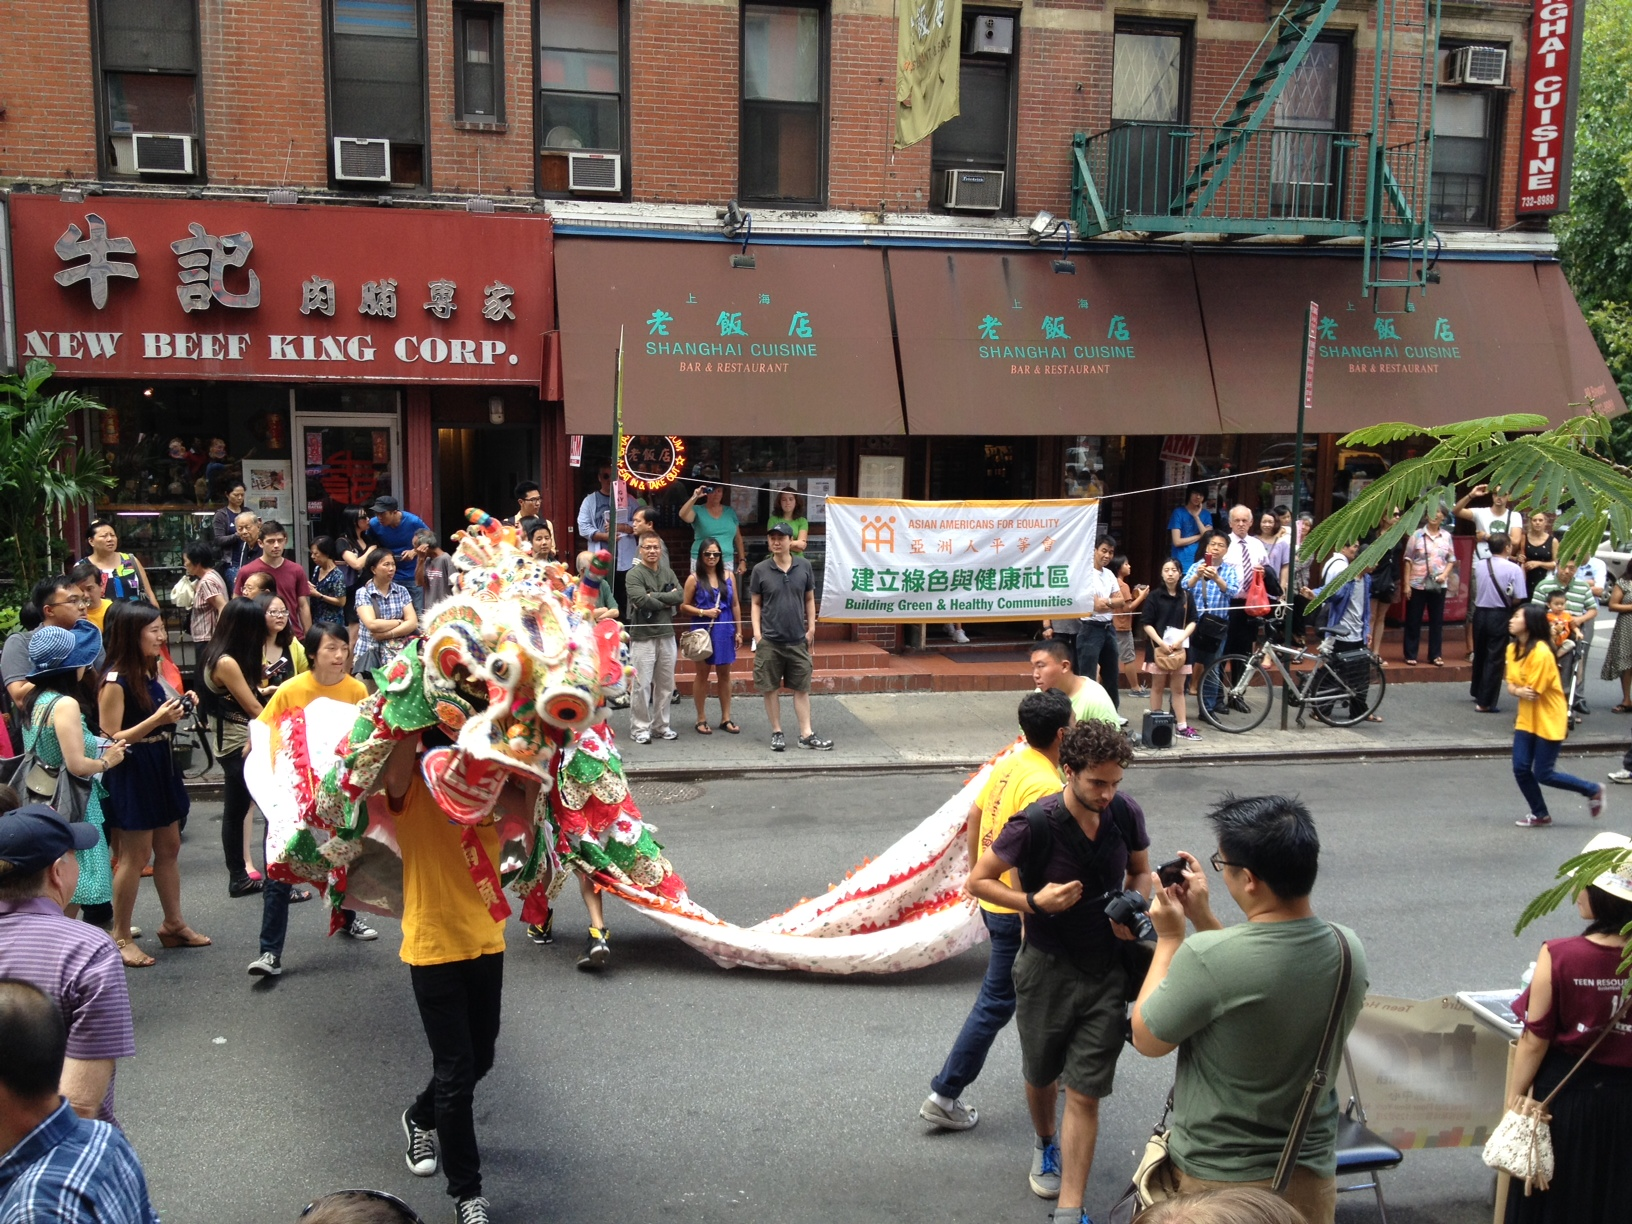 AAFE Holds Annual Chinatown Summer Street Festival